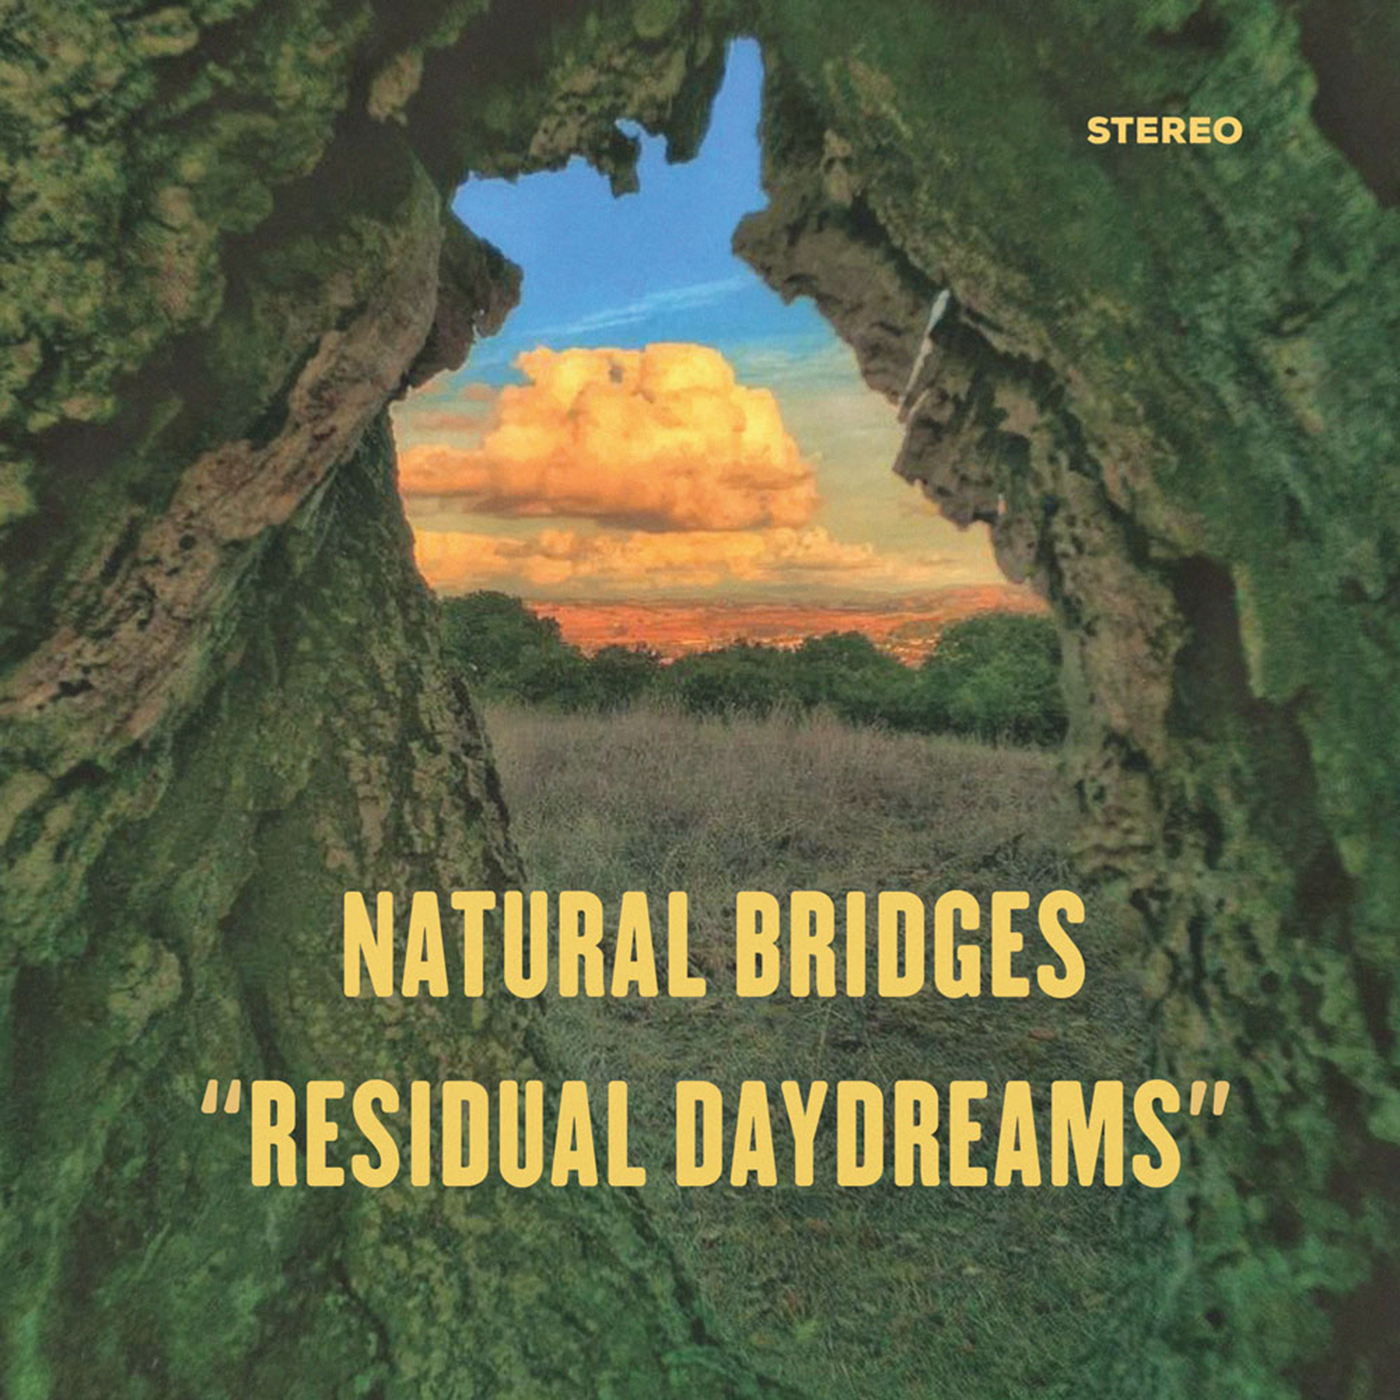 RESIDUAL DAYDREAMS